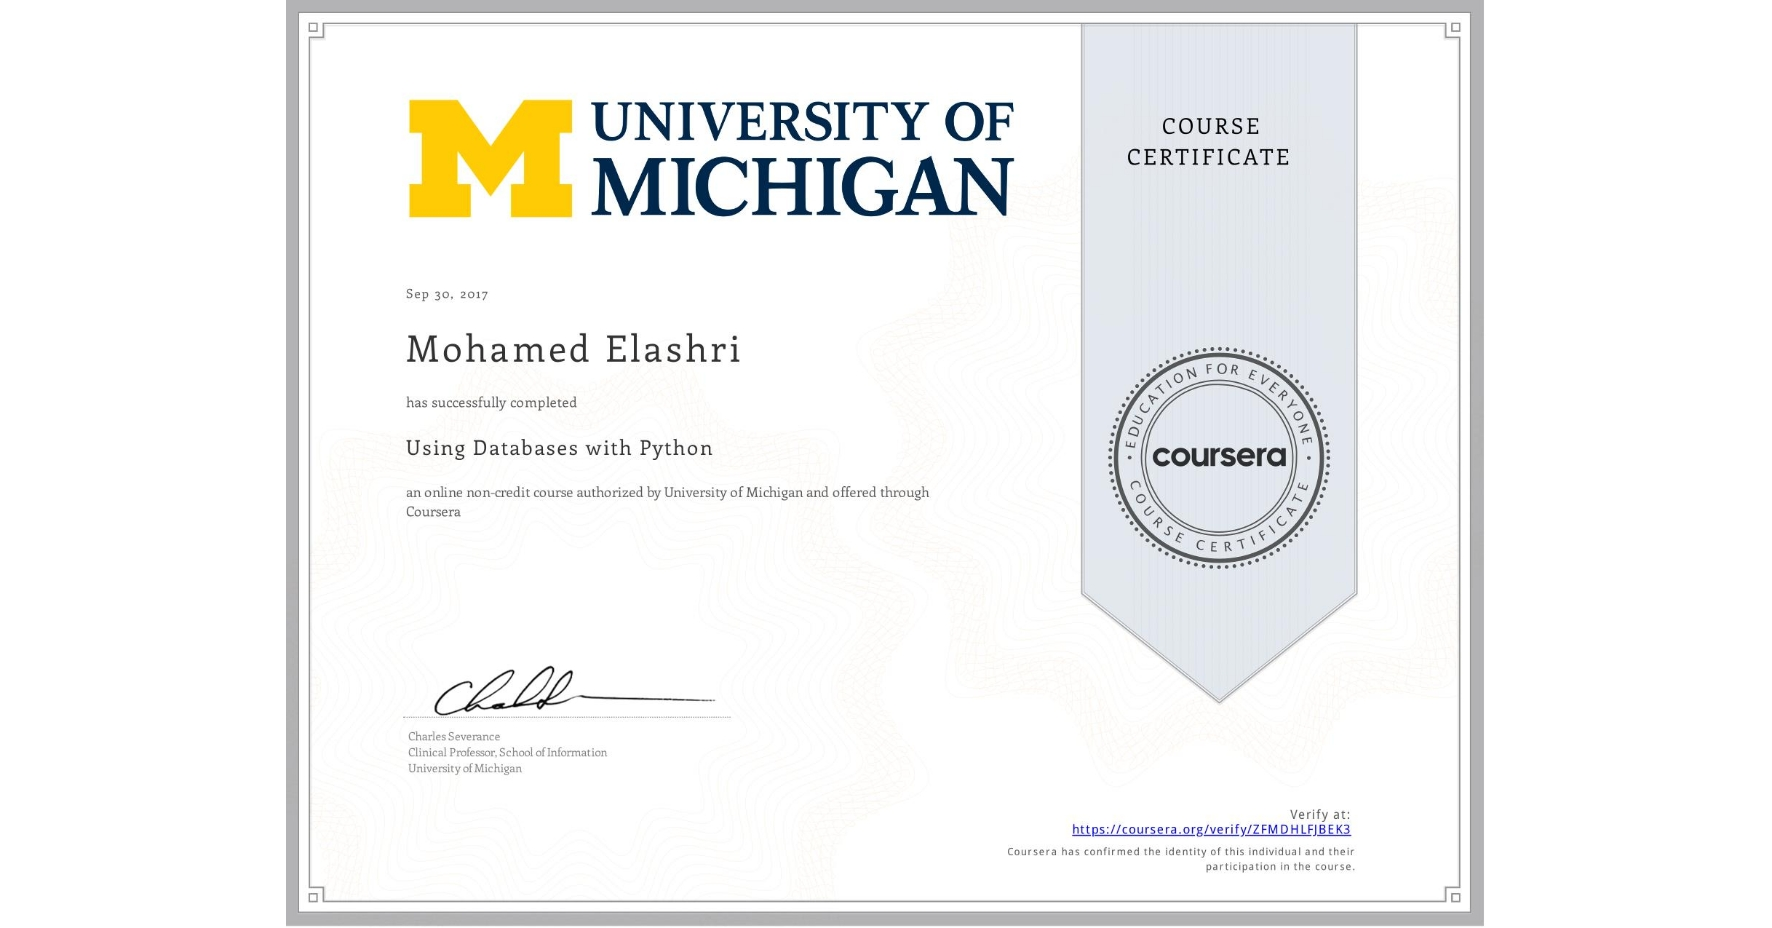 View certificate for Mohamed Elashri, Using Databases with Python, an online non-credit course authorized by University of Michigan and offered through Coursera